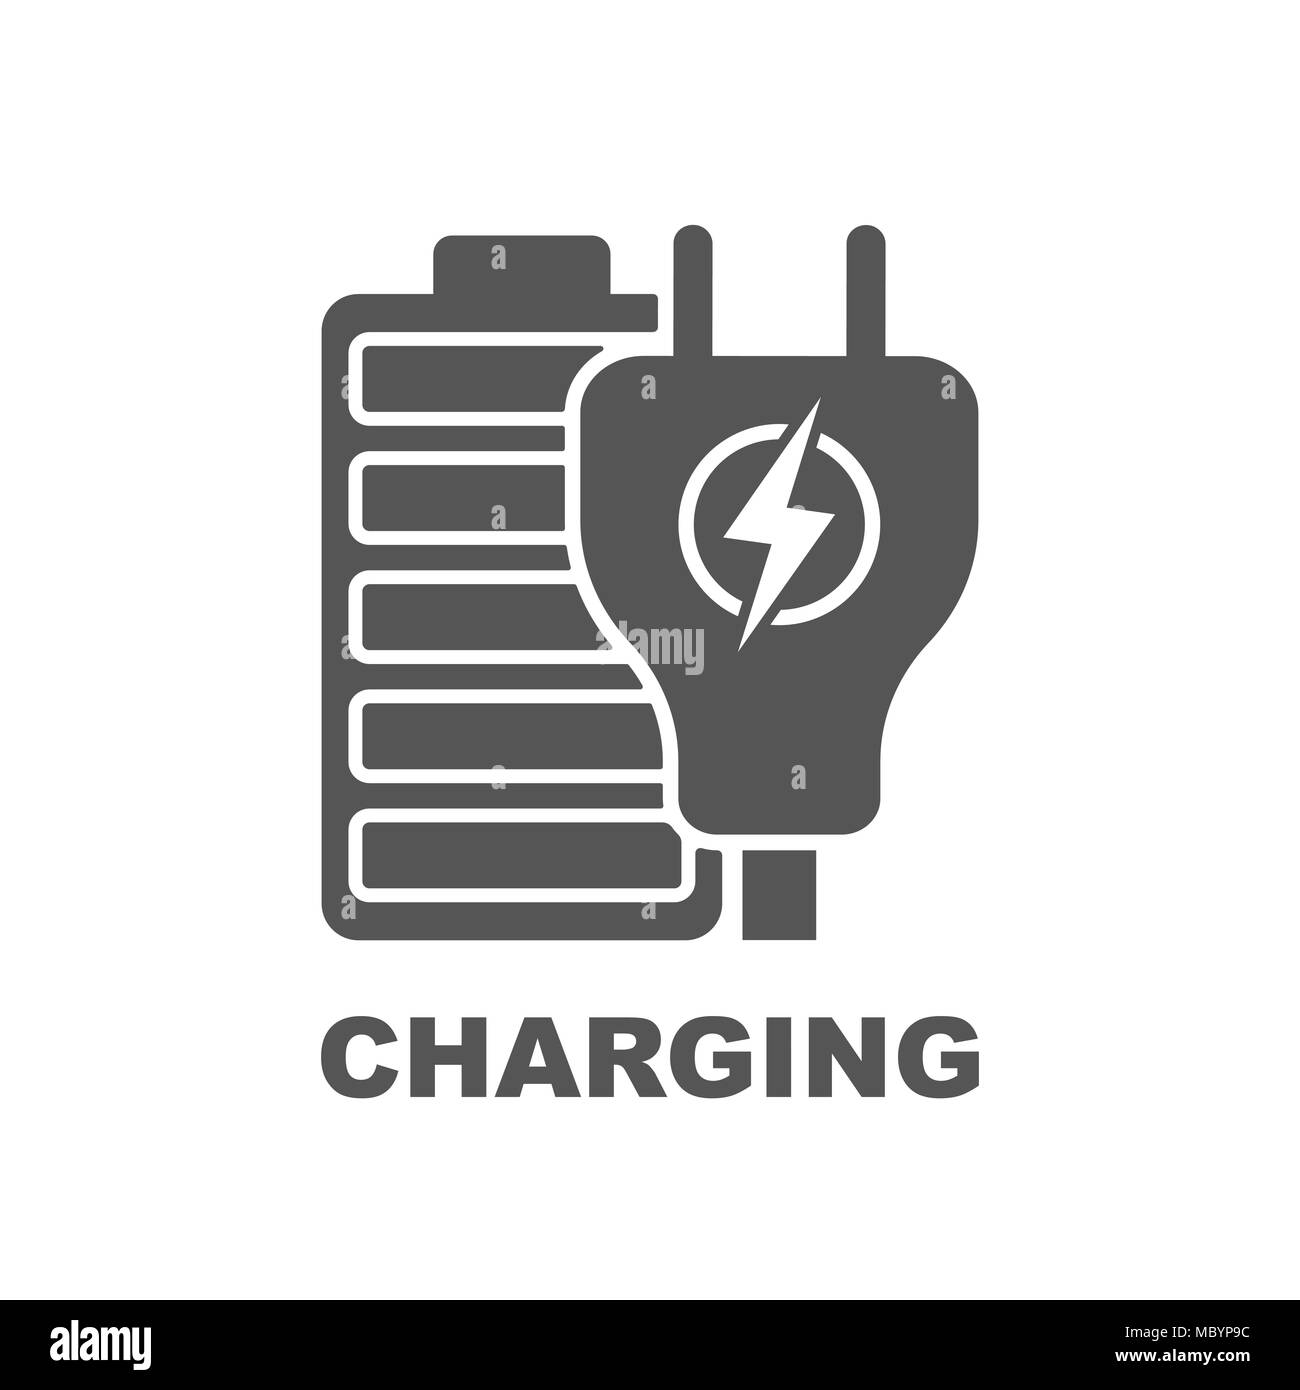 Battery Charging vector icon - Stock Vector